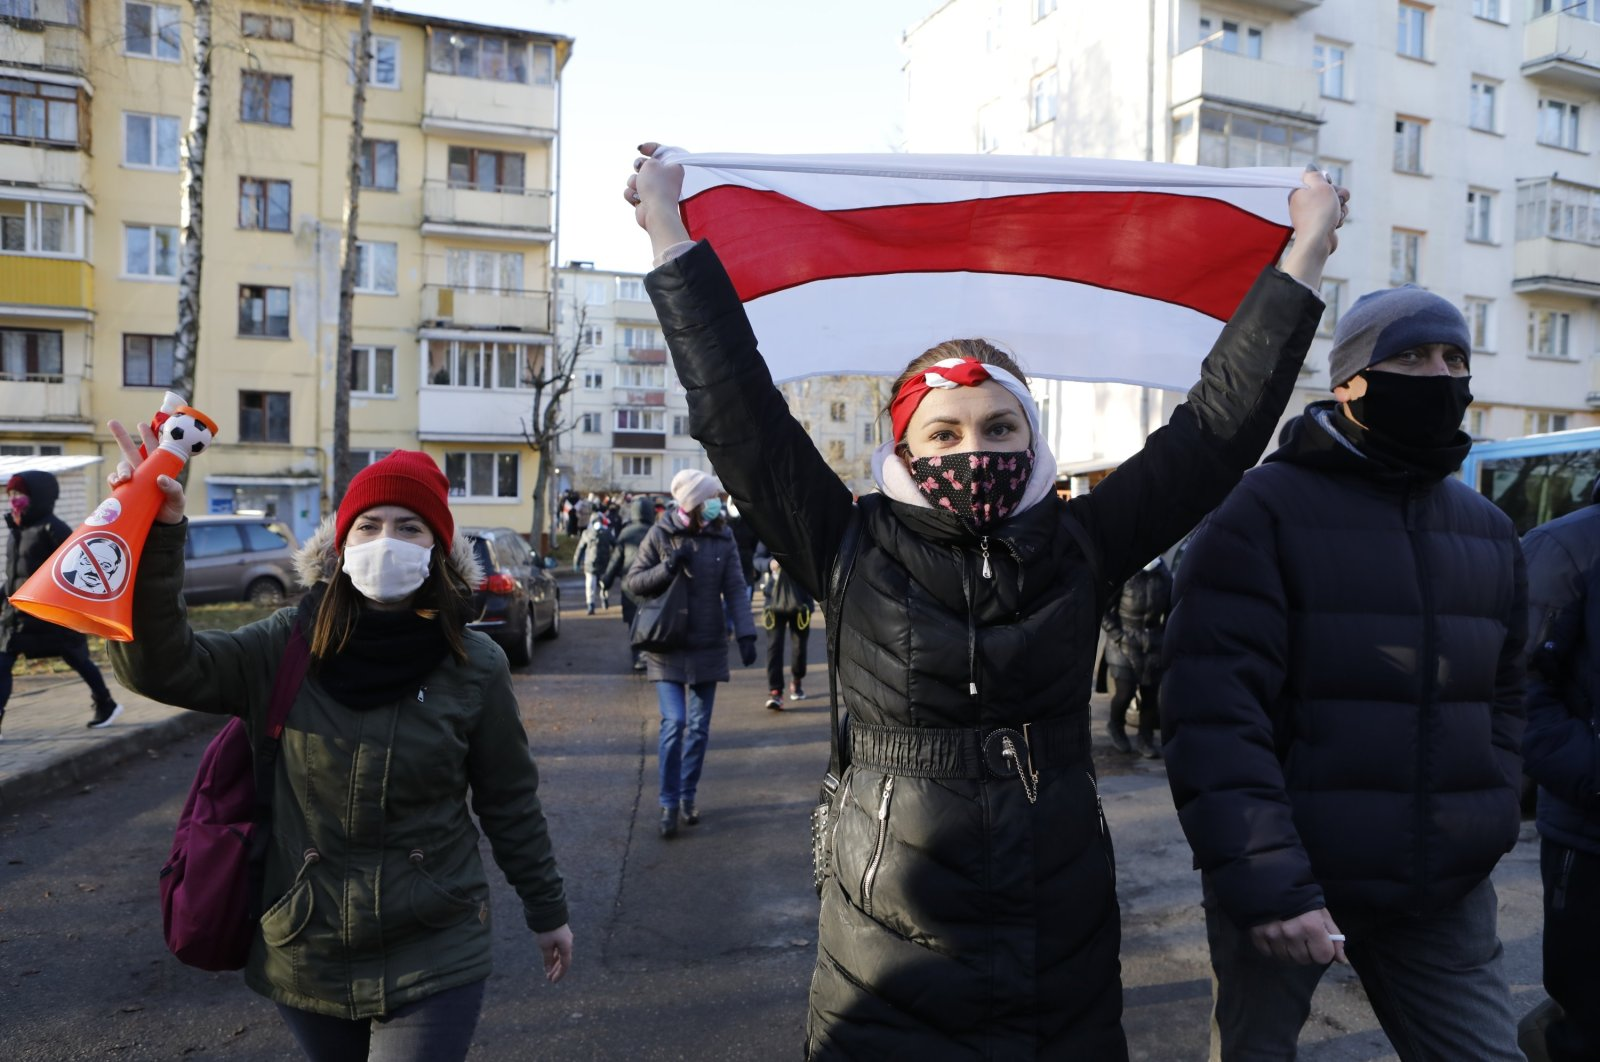 Demonstrators wearing face masks to help curb the spread of the coronavirus, wave an old Belarusian national flag, during an opposition rally to protest the official presidential election results in Minsk, Belarus, Sunday, Dec. 6, 2020. (AP File Photo)